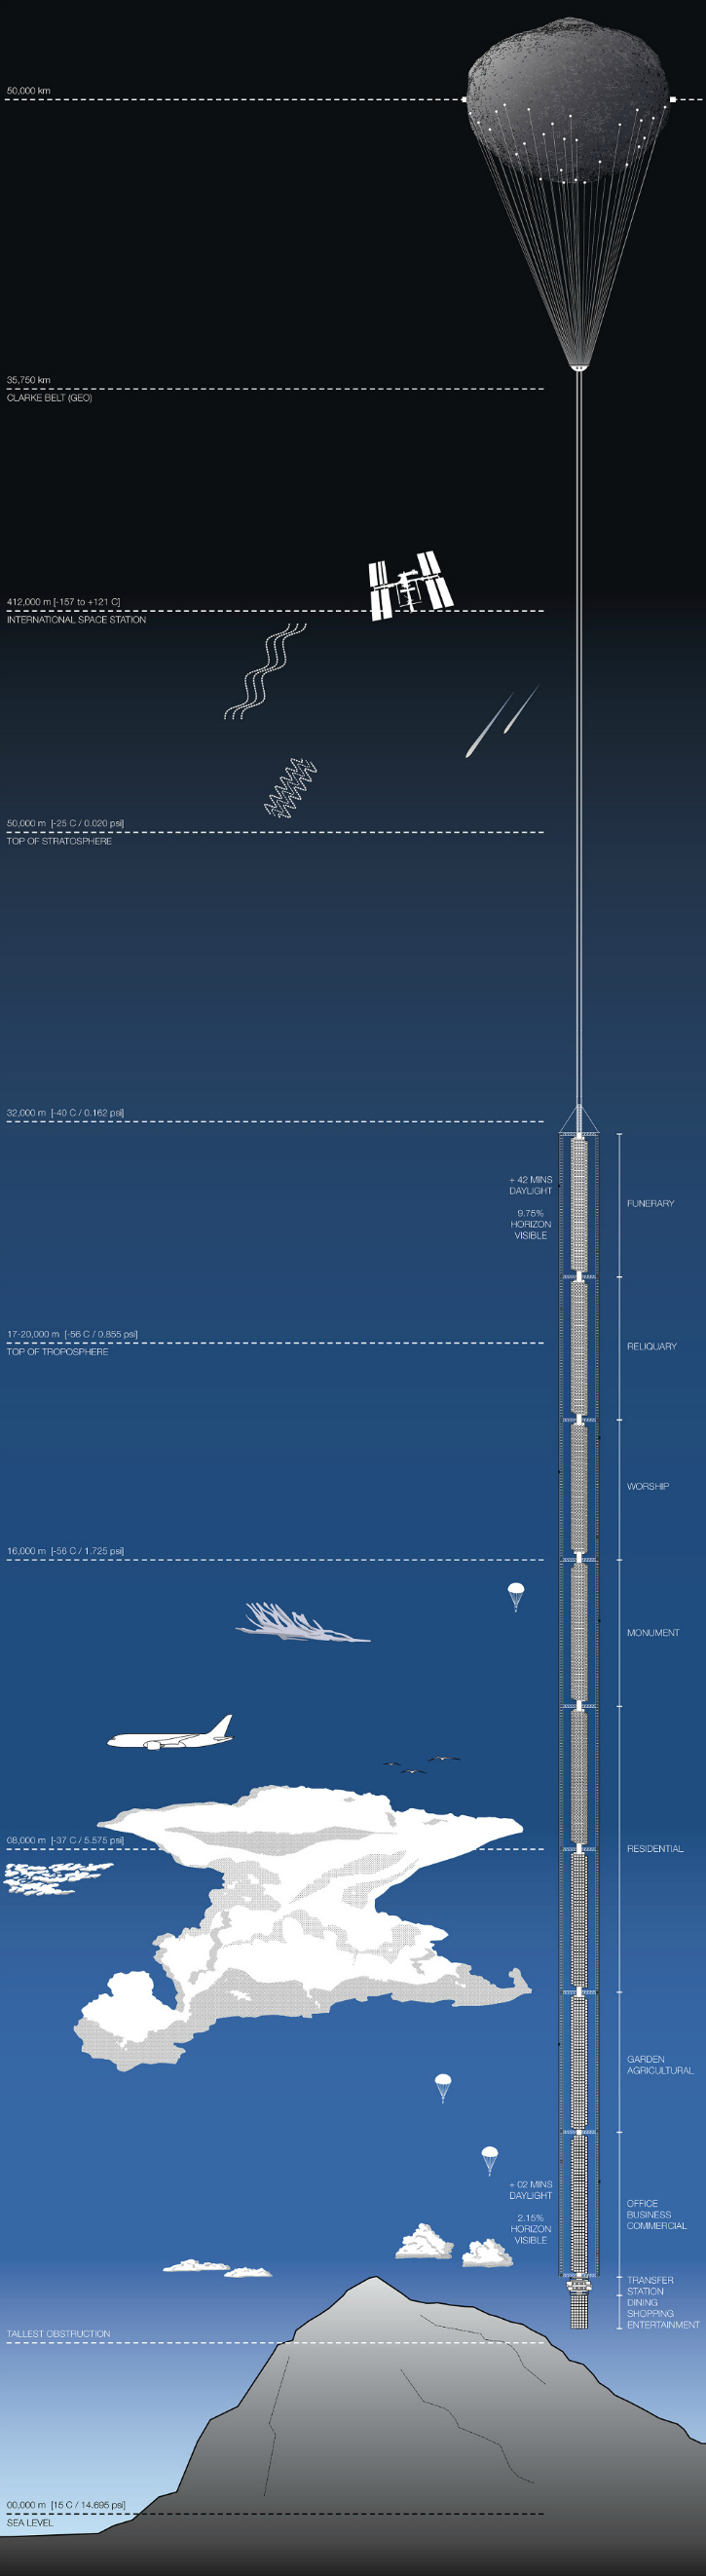 An infographic shows approximately how high the Analemma extends